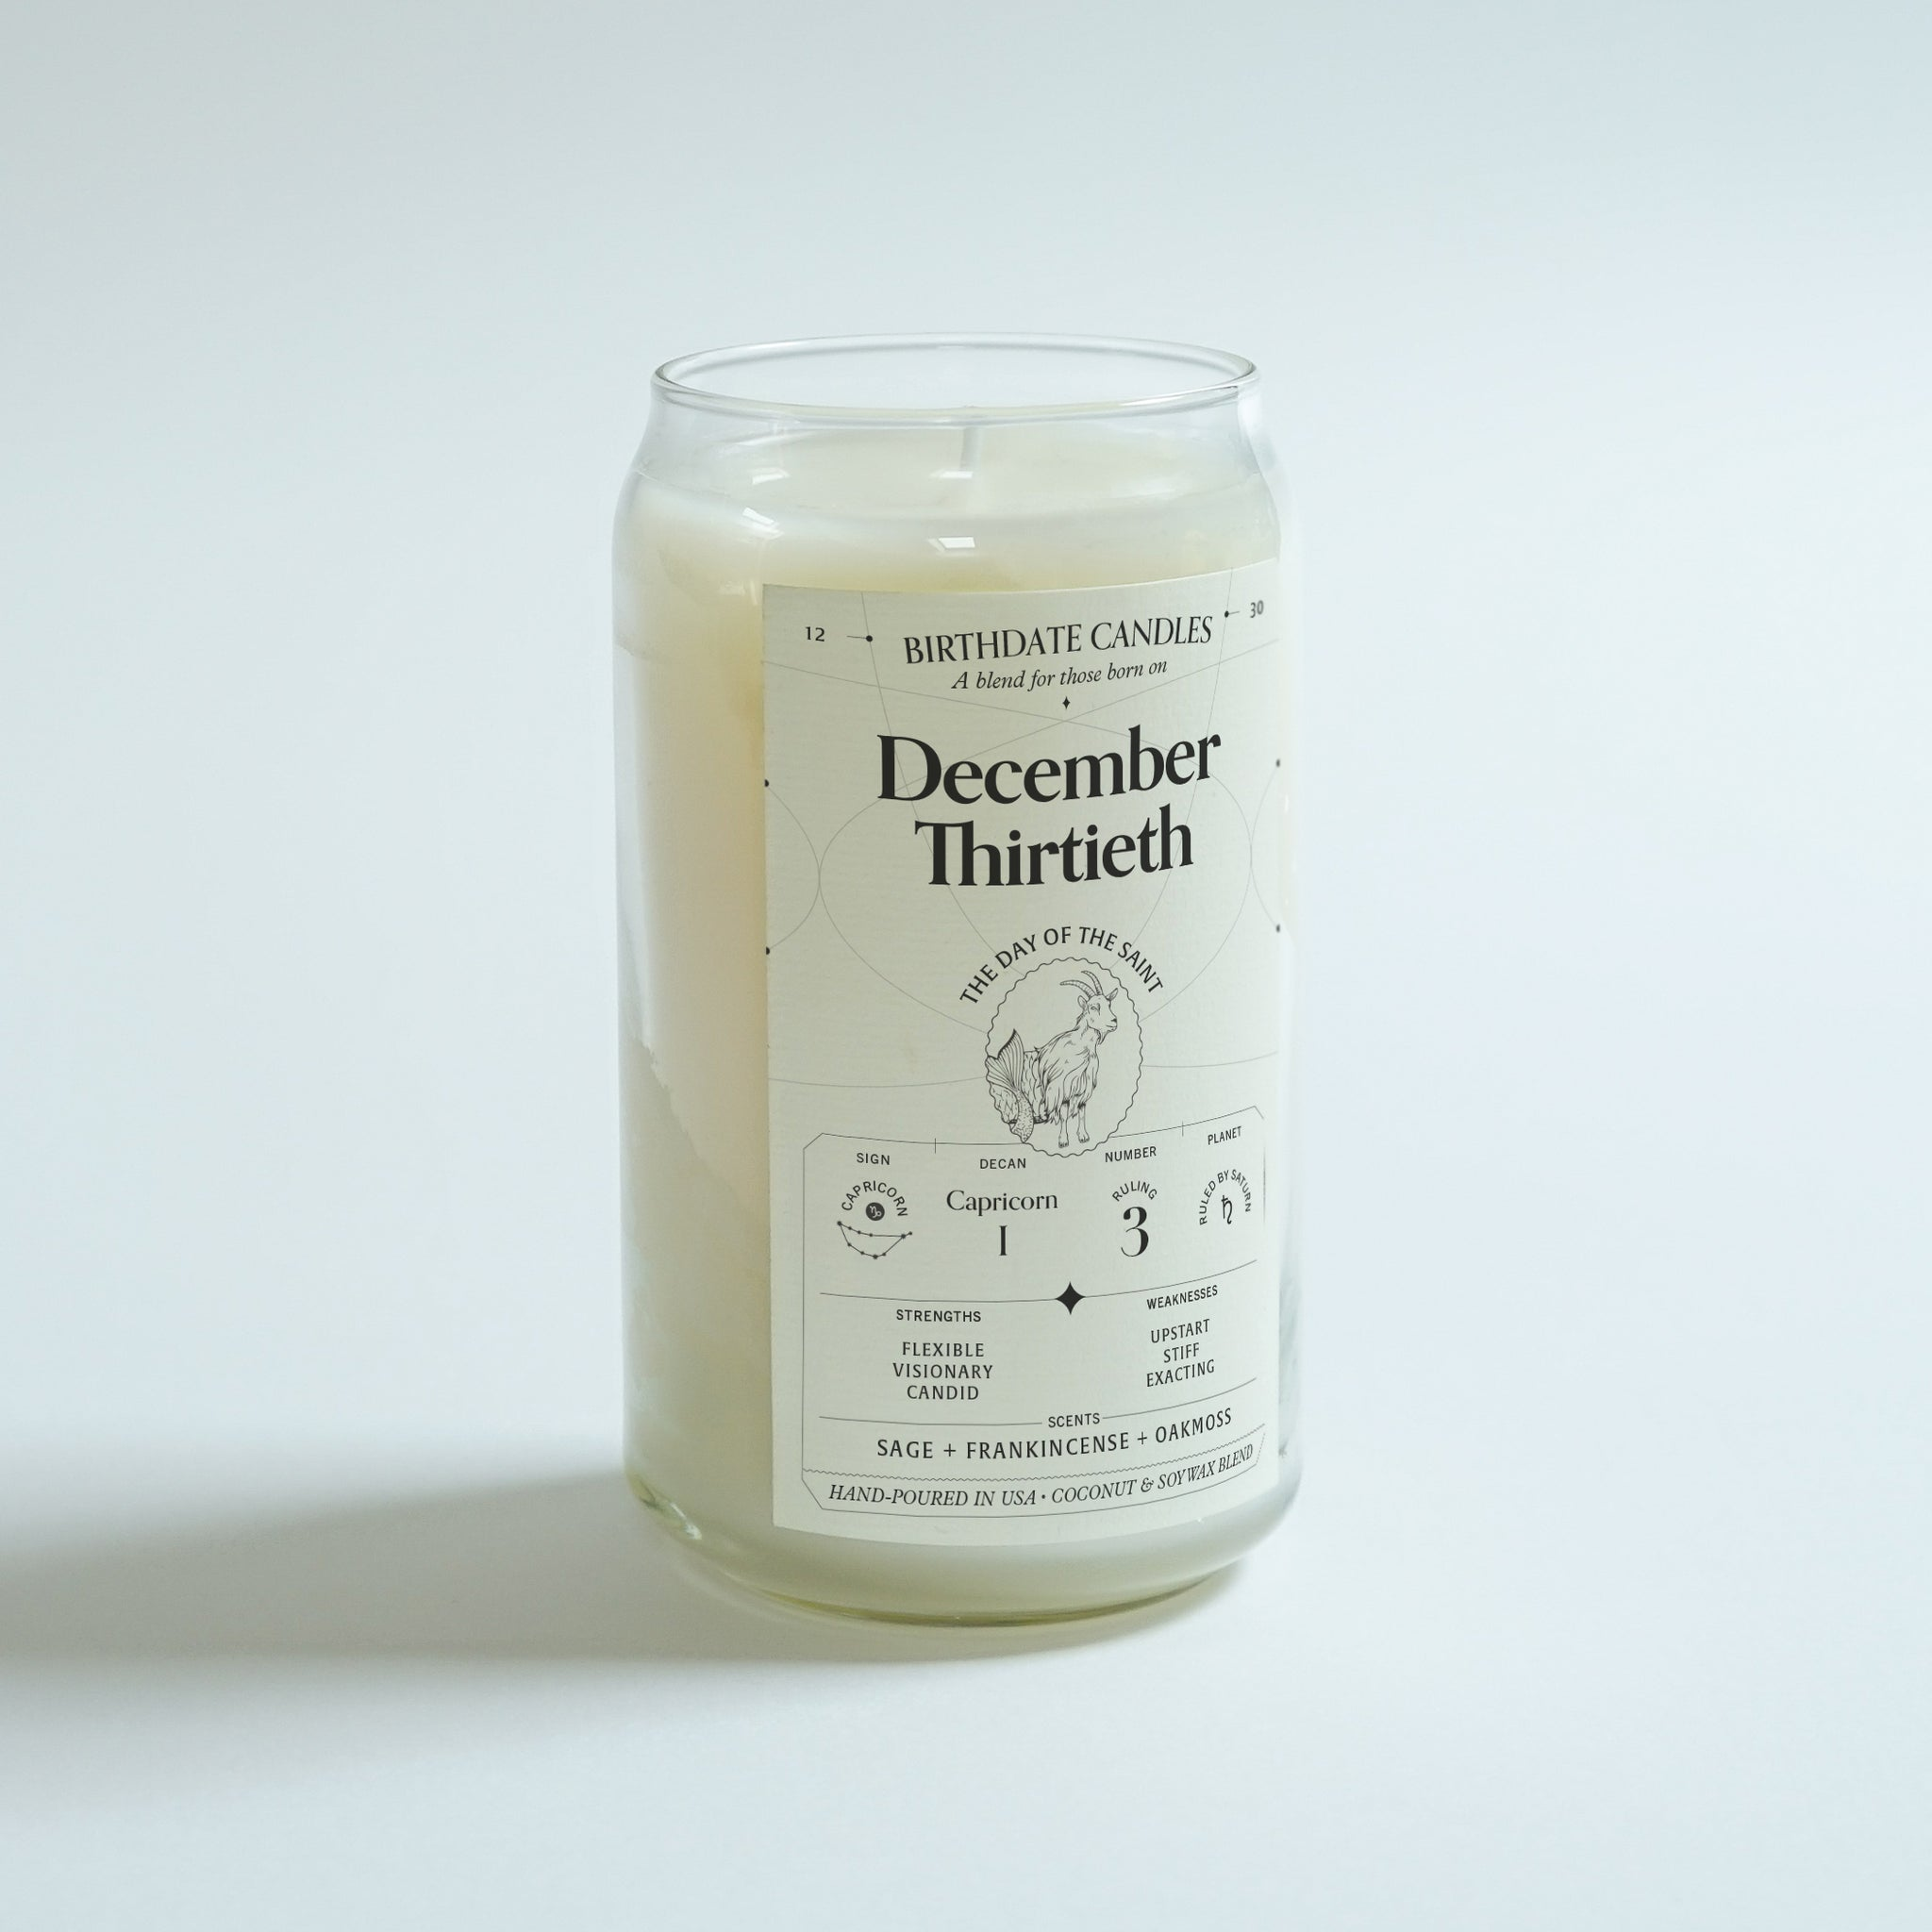 The December Thirtieth Candle